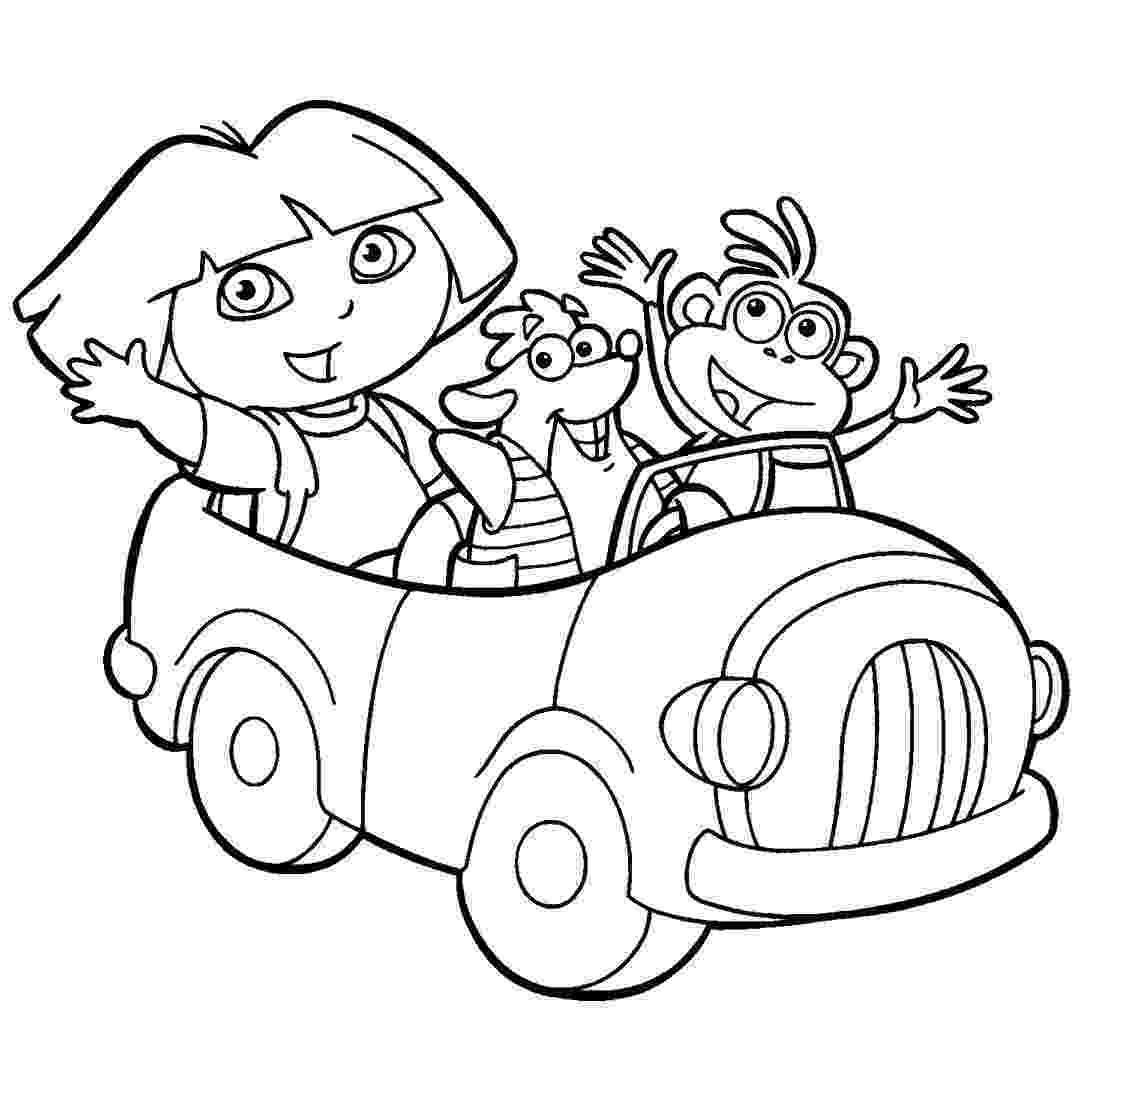 dora explorer coloring free printable dora the explorer coloring pages for kids explorer coloring dora